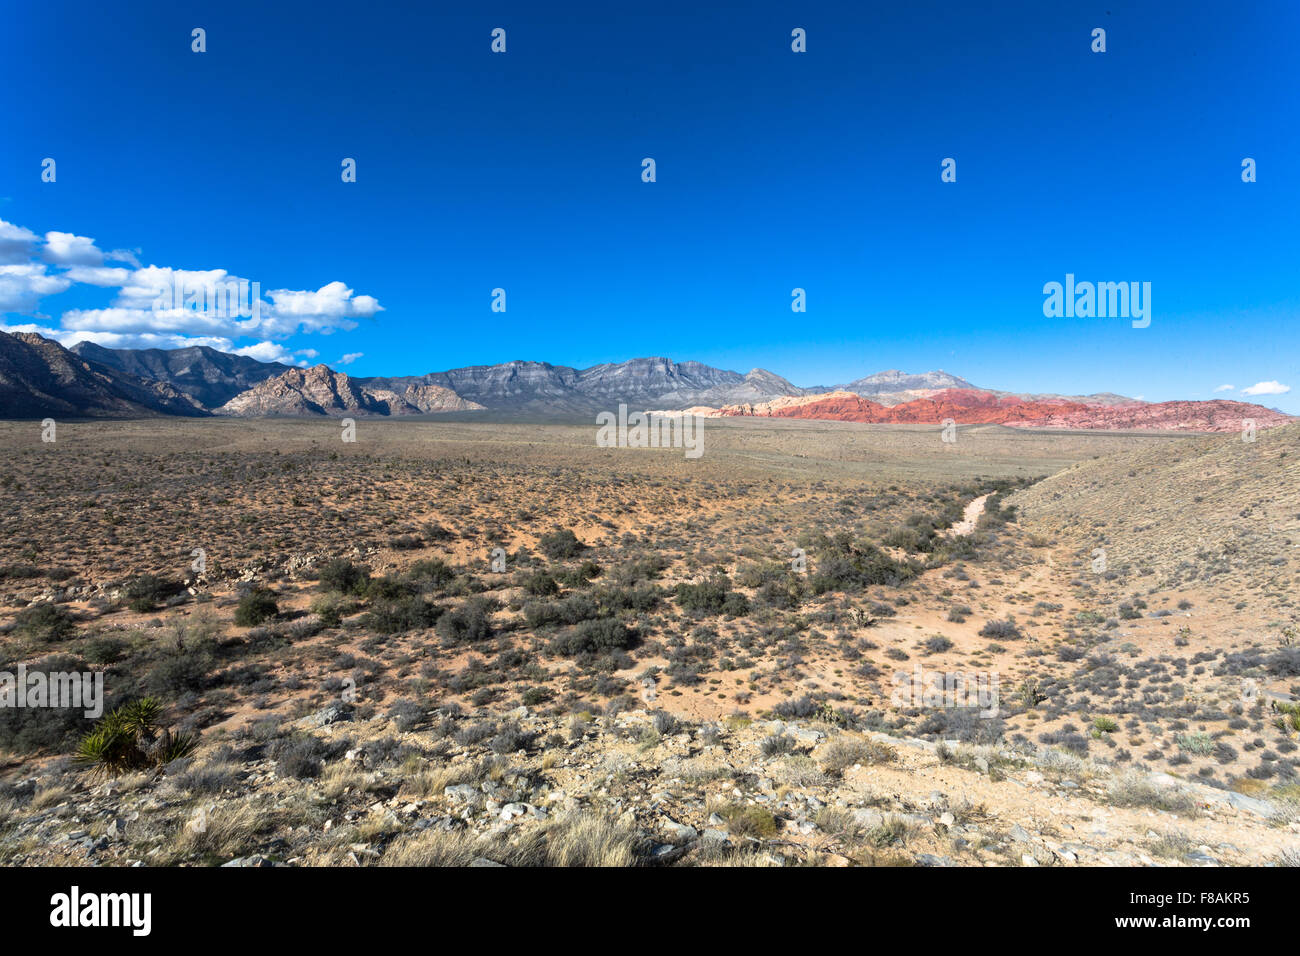 View of Red Rock Canyon outside of Las Vegas from the observation area - Clark County, NV - Stock Image